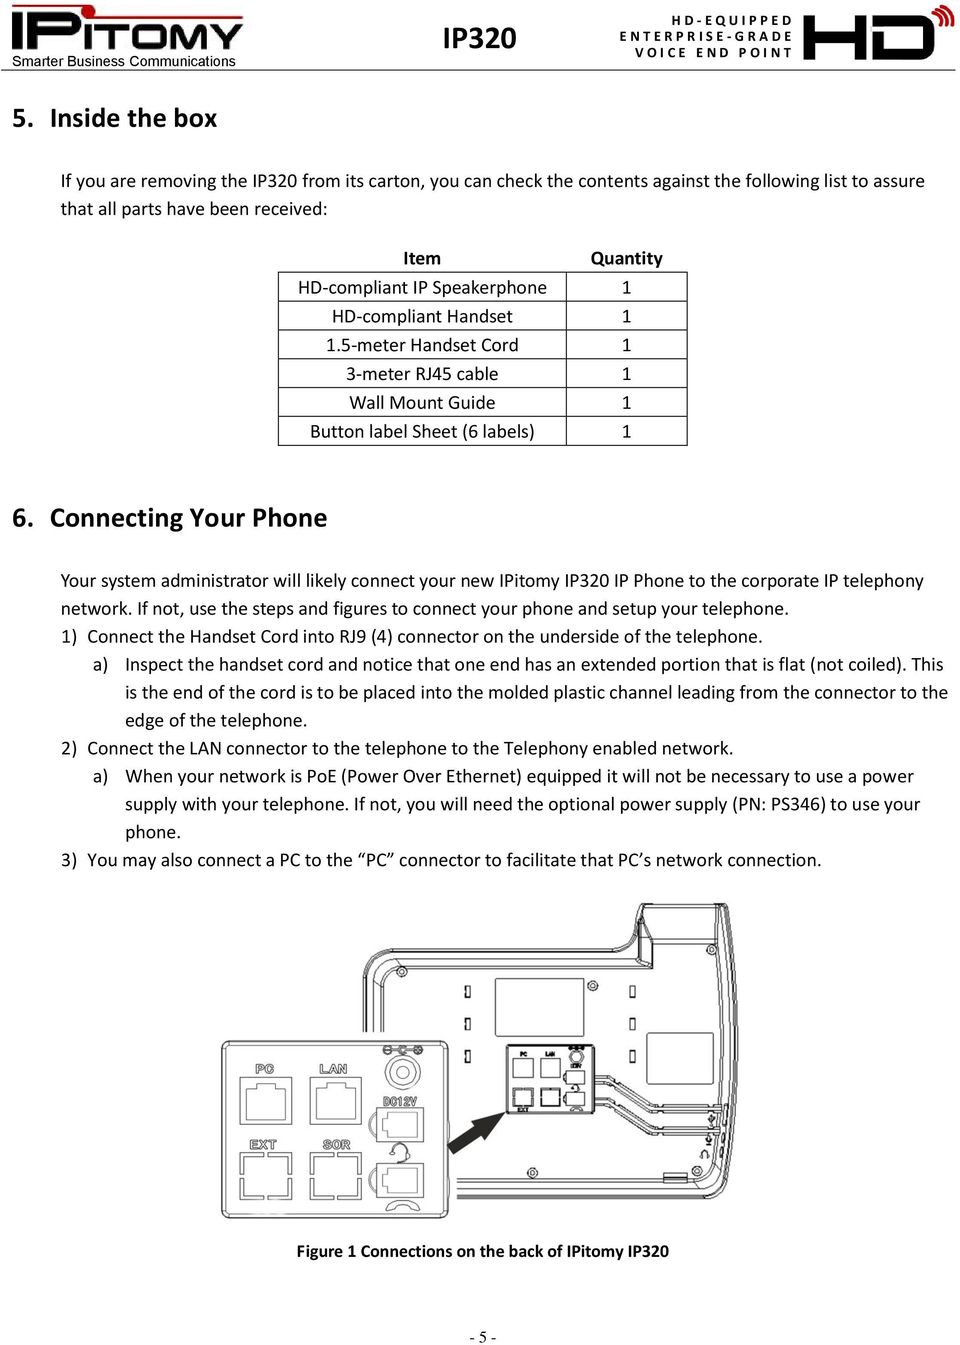 hight resolution of connecting your phone your system administrator will likely connect your new ipitomy ip phone to the